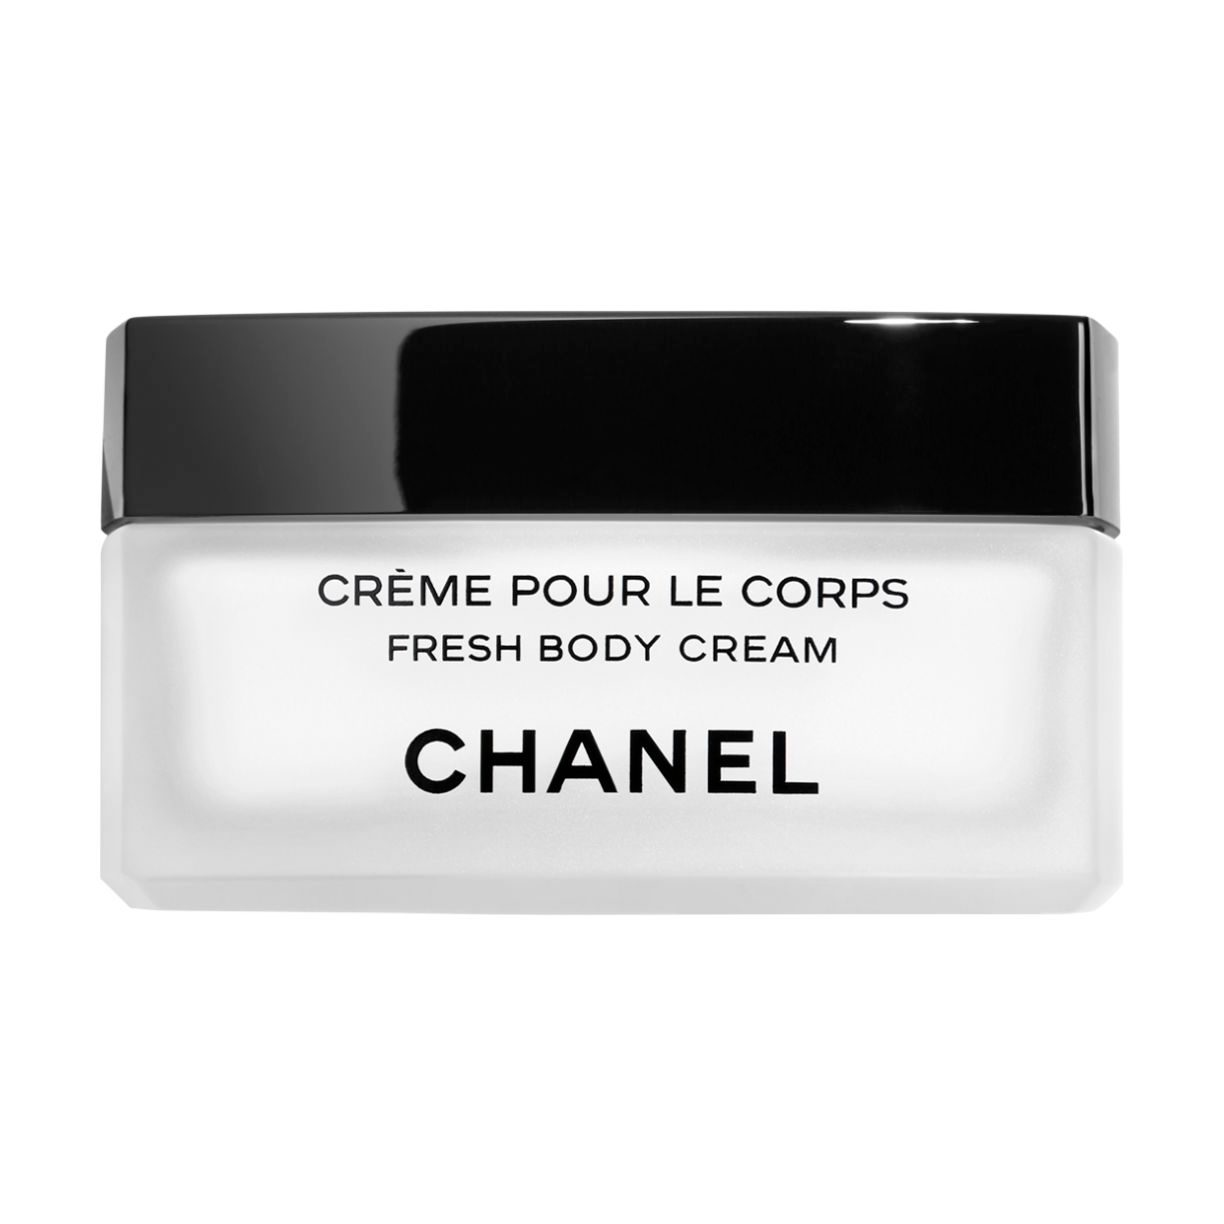 FRESH BODY CREAM LES EXCLUSIFS DE CHANEL 150g